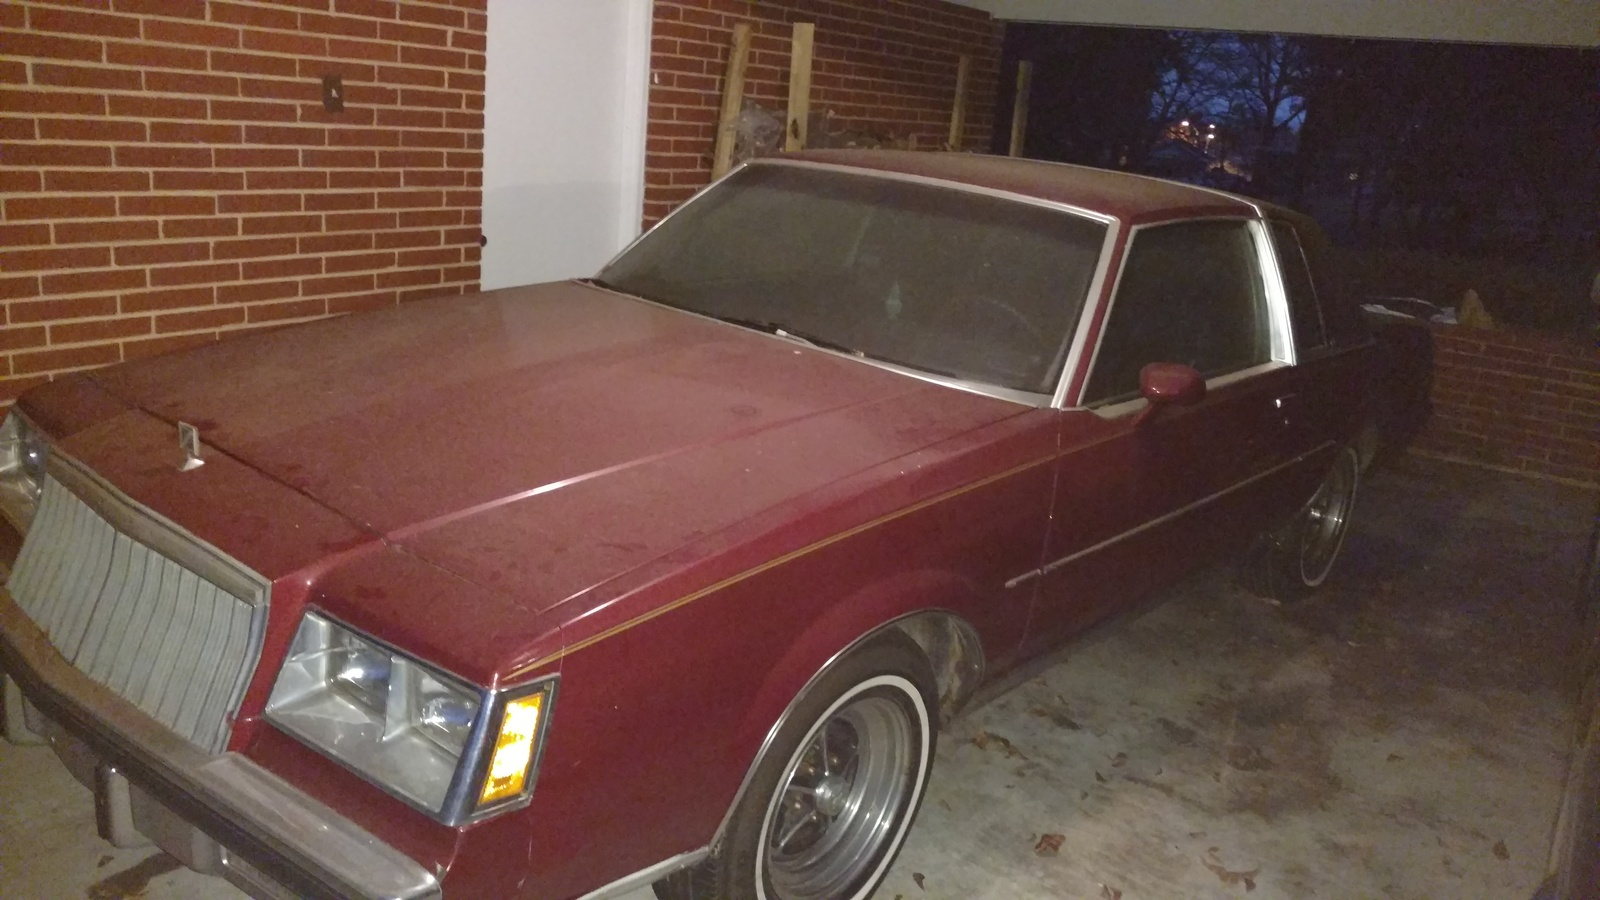 Buick Regal Questions - i have a 1981 buick regal v6 and wanted to ...